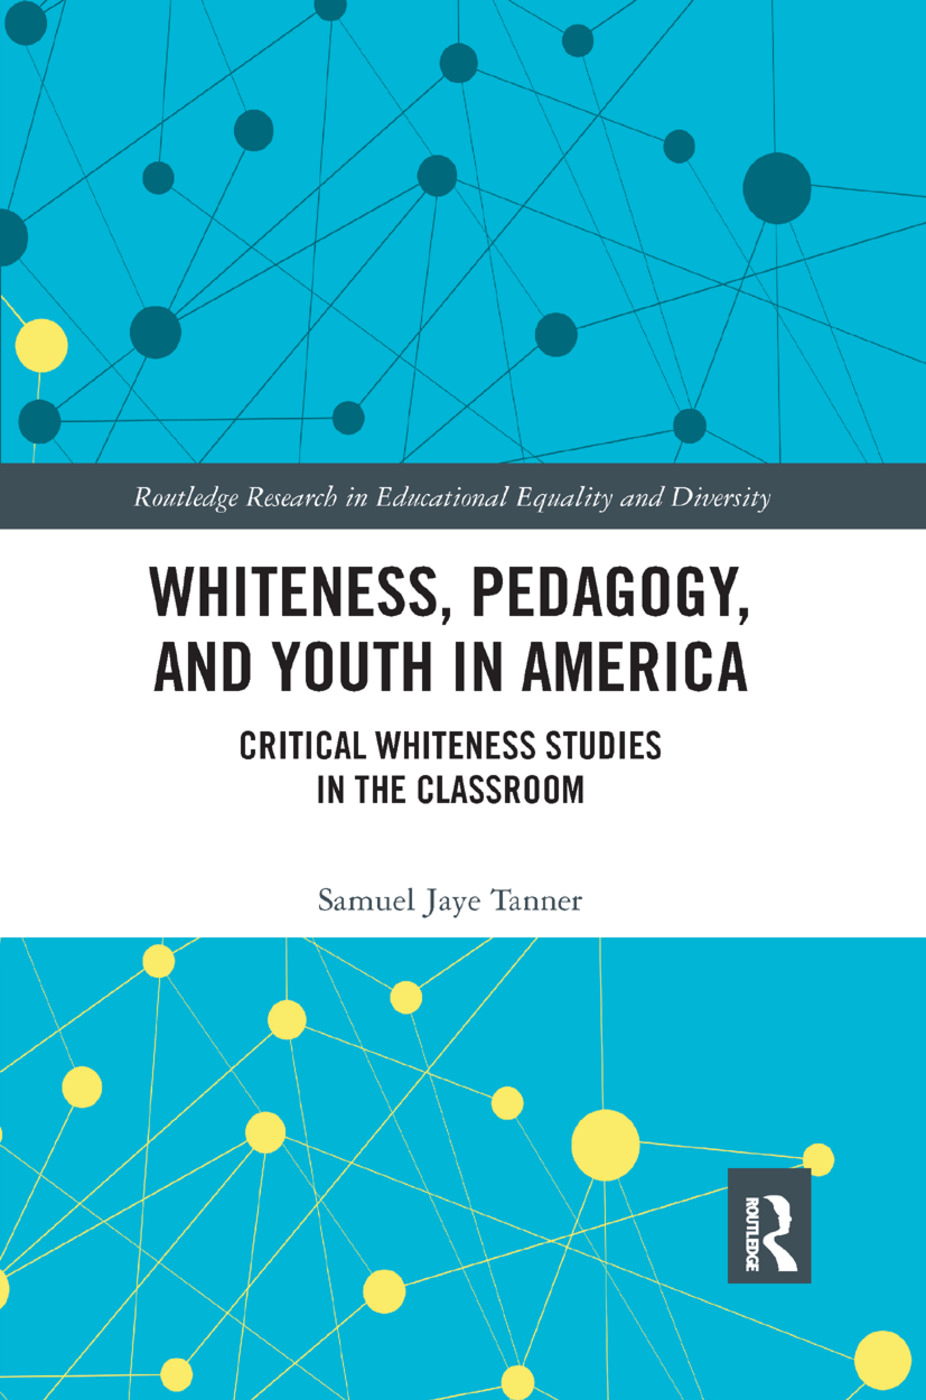 Whiteness, Pedagogy, and Youth in America